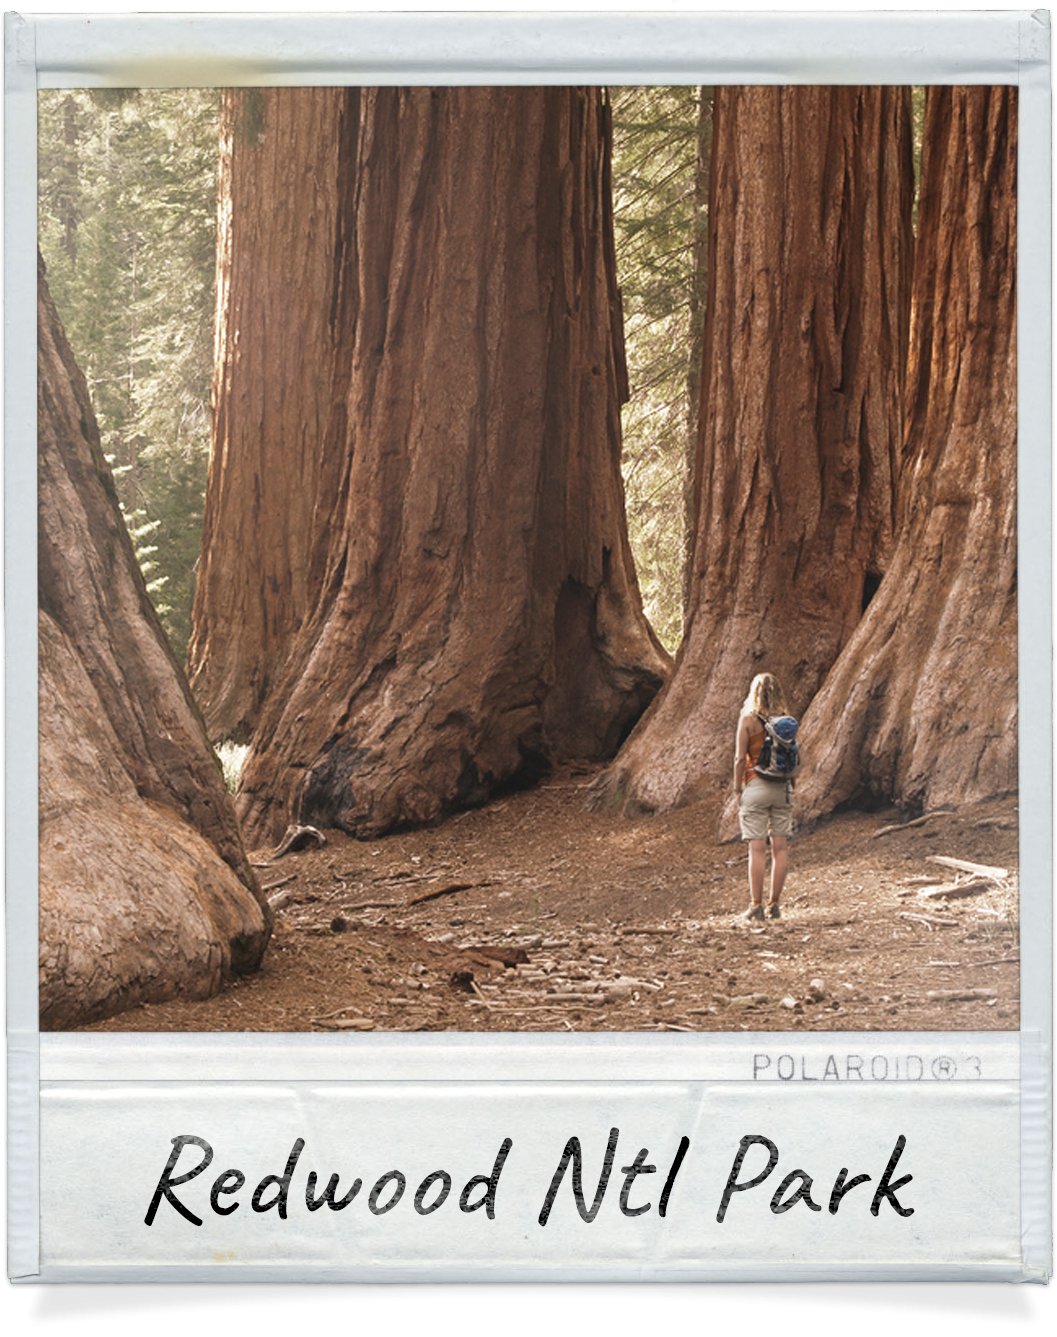 Redwood National Park near Redwood Meadows in Crescent City, CA